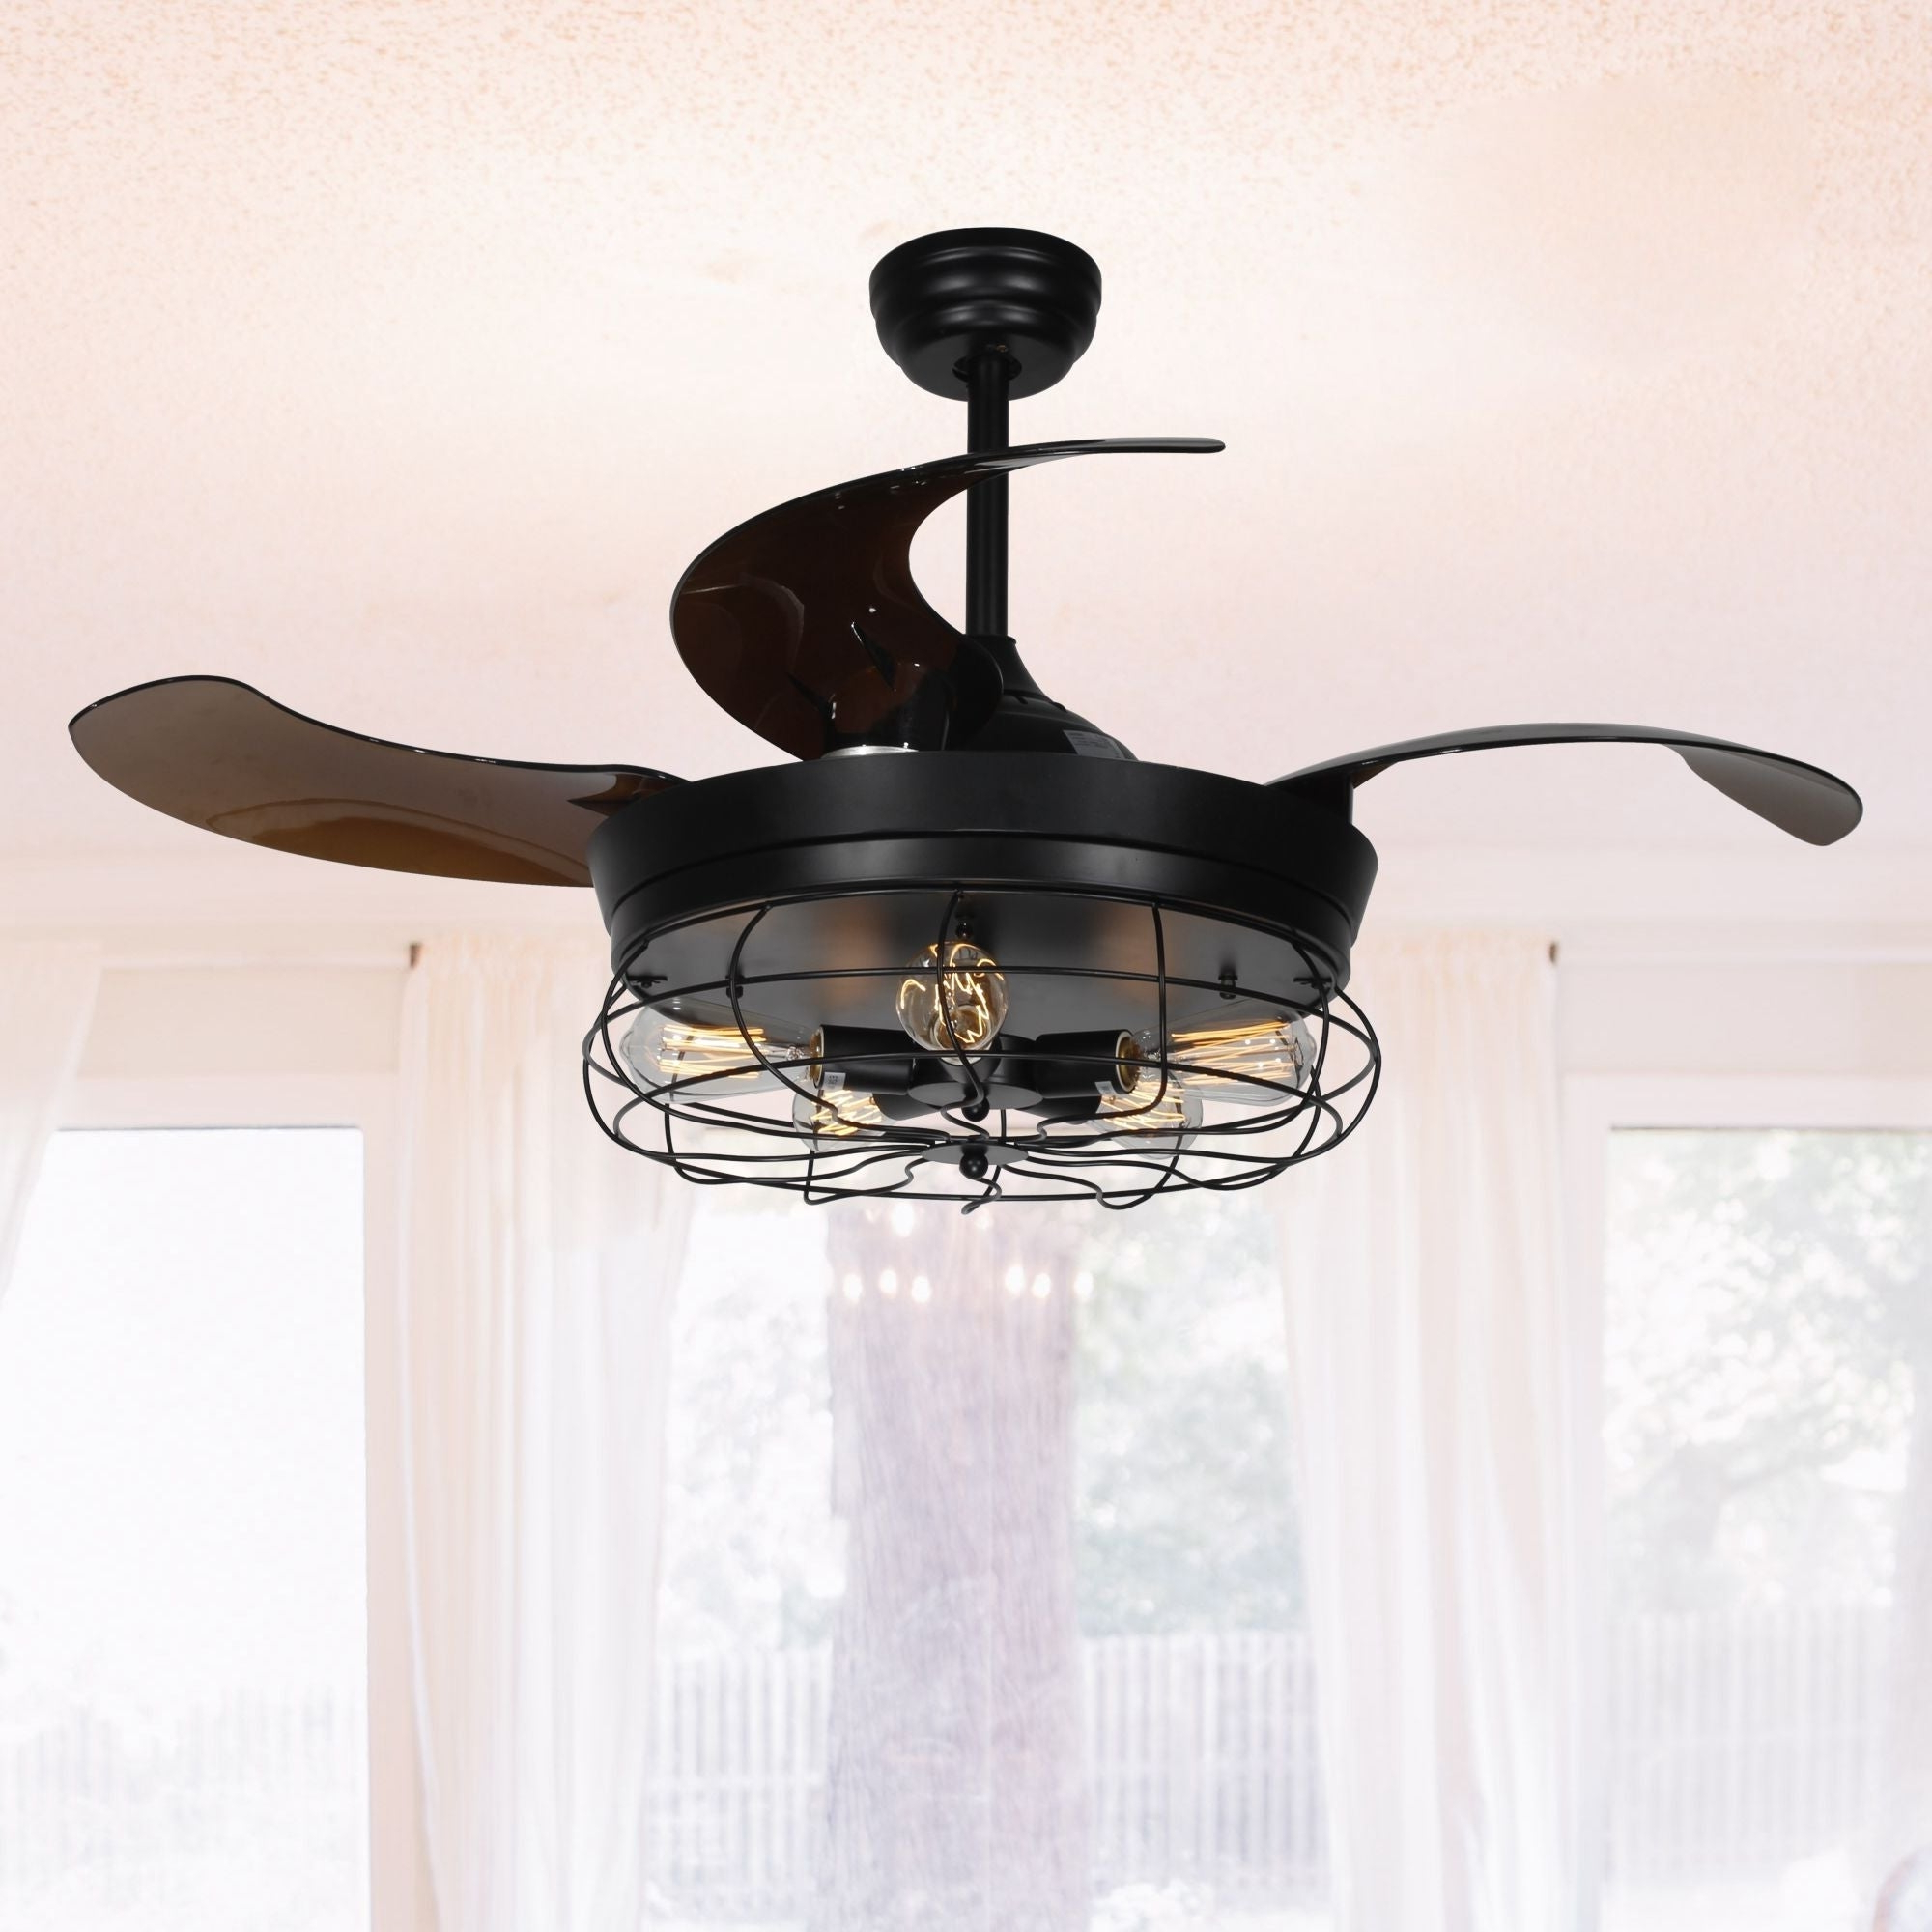 46 Inch Industrial Foldable 4 Blades Ceiling Fans With Shade Regarding Current Ratcliffe 5 Blade Led Ceiling Fans (View 1 of 20)